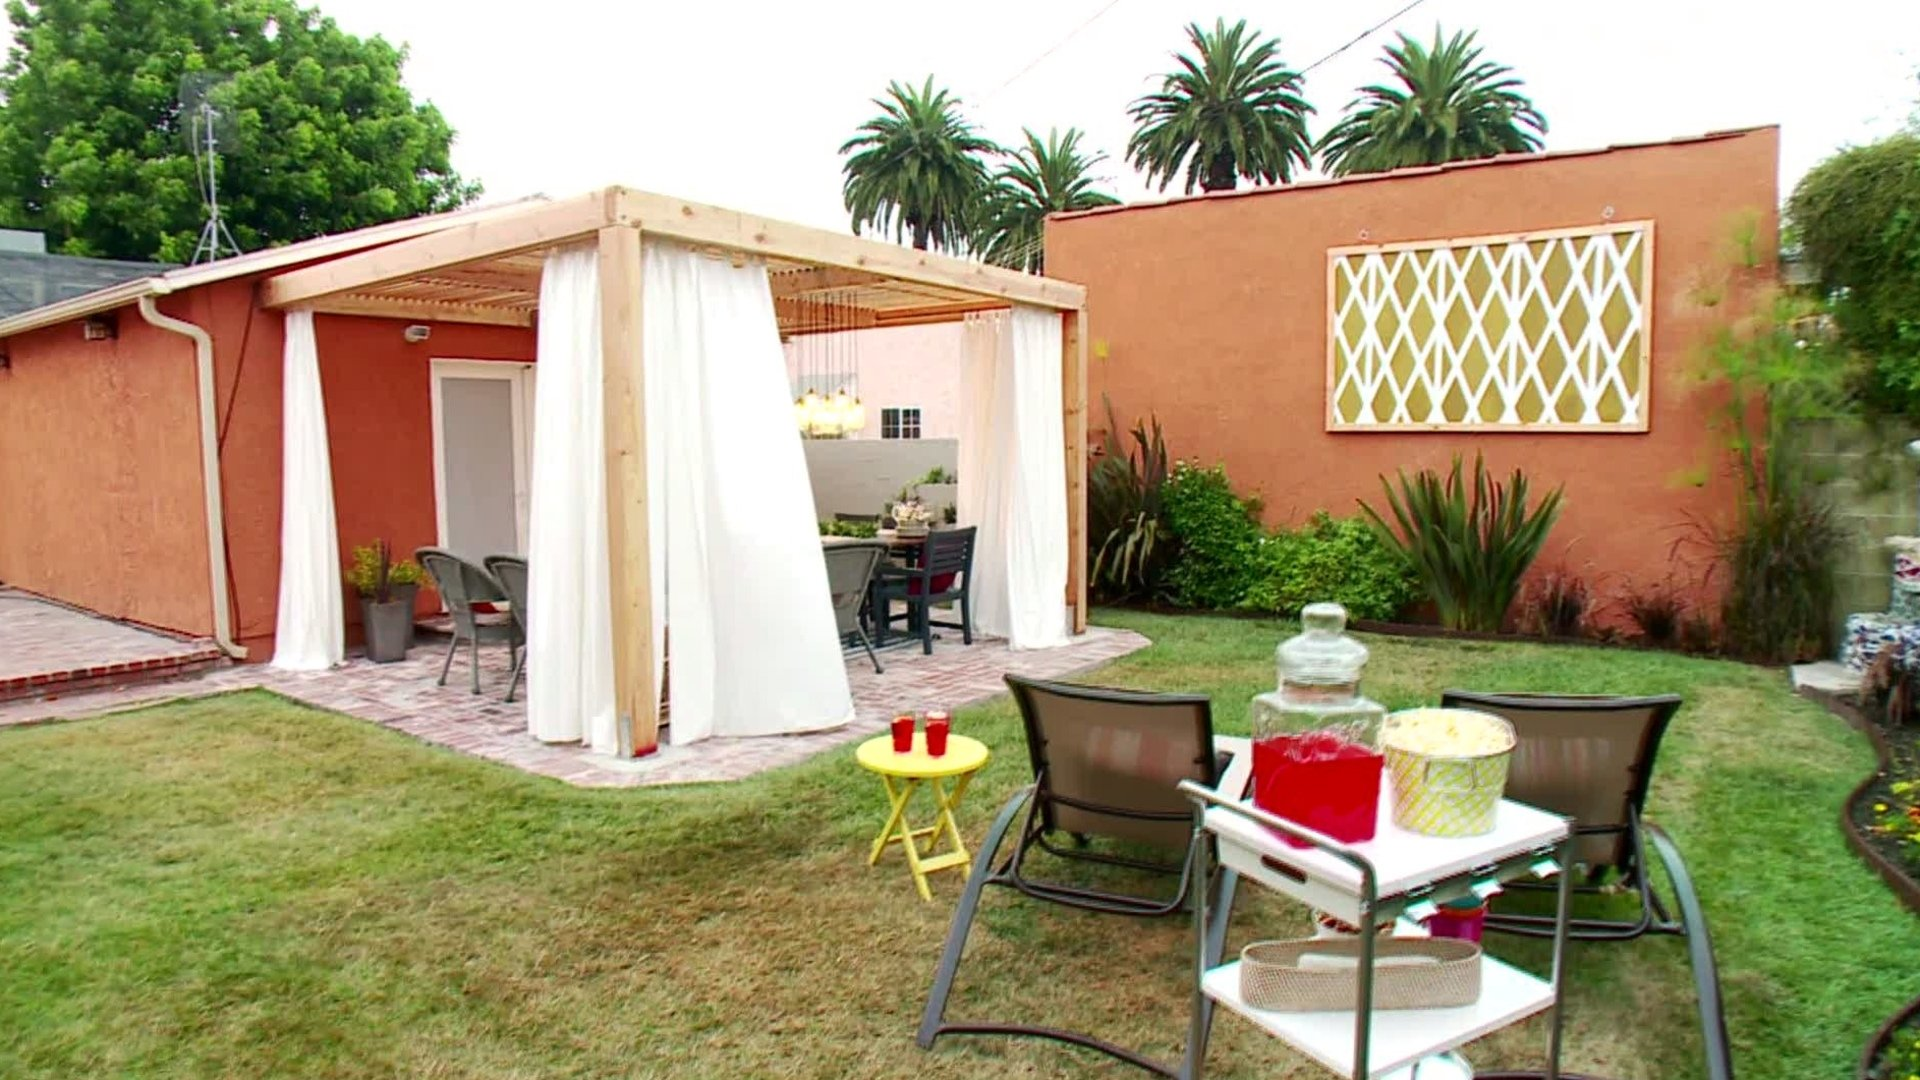 10 Ideal Backyard Decorating Ideas On A Budget 12 budget friendly backyards diy 3 2020